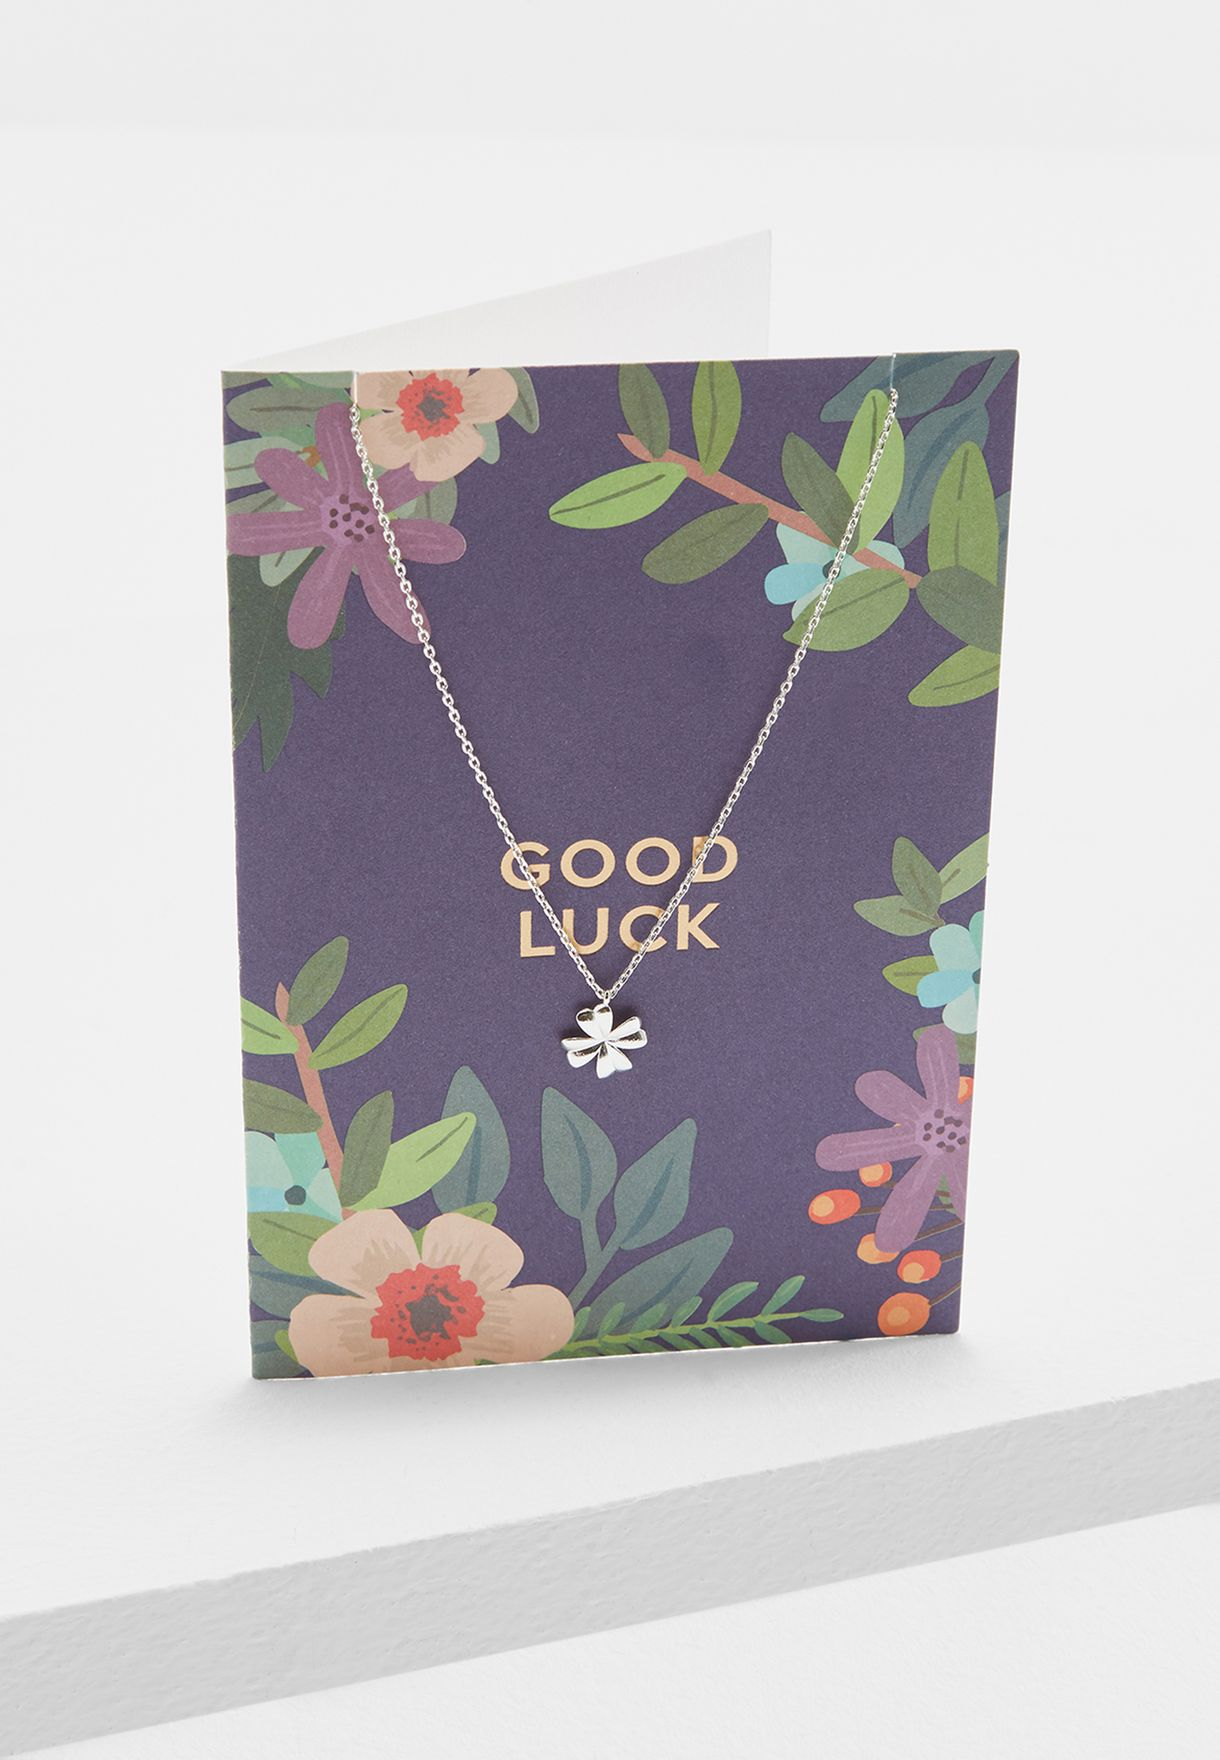 Good Luck Floral Clover Necklace With Giftcard